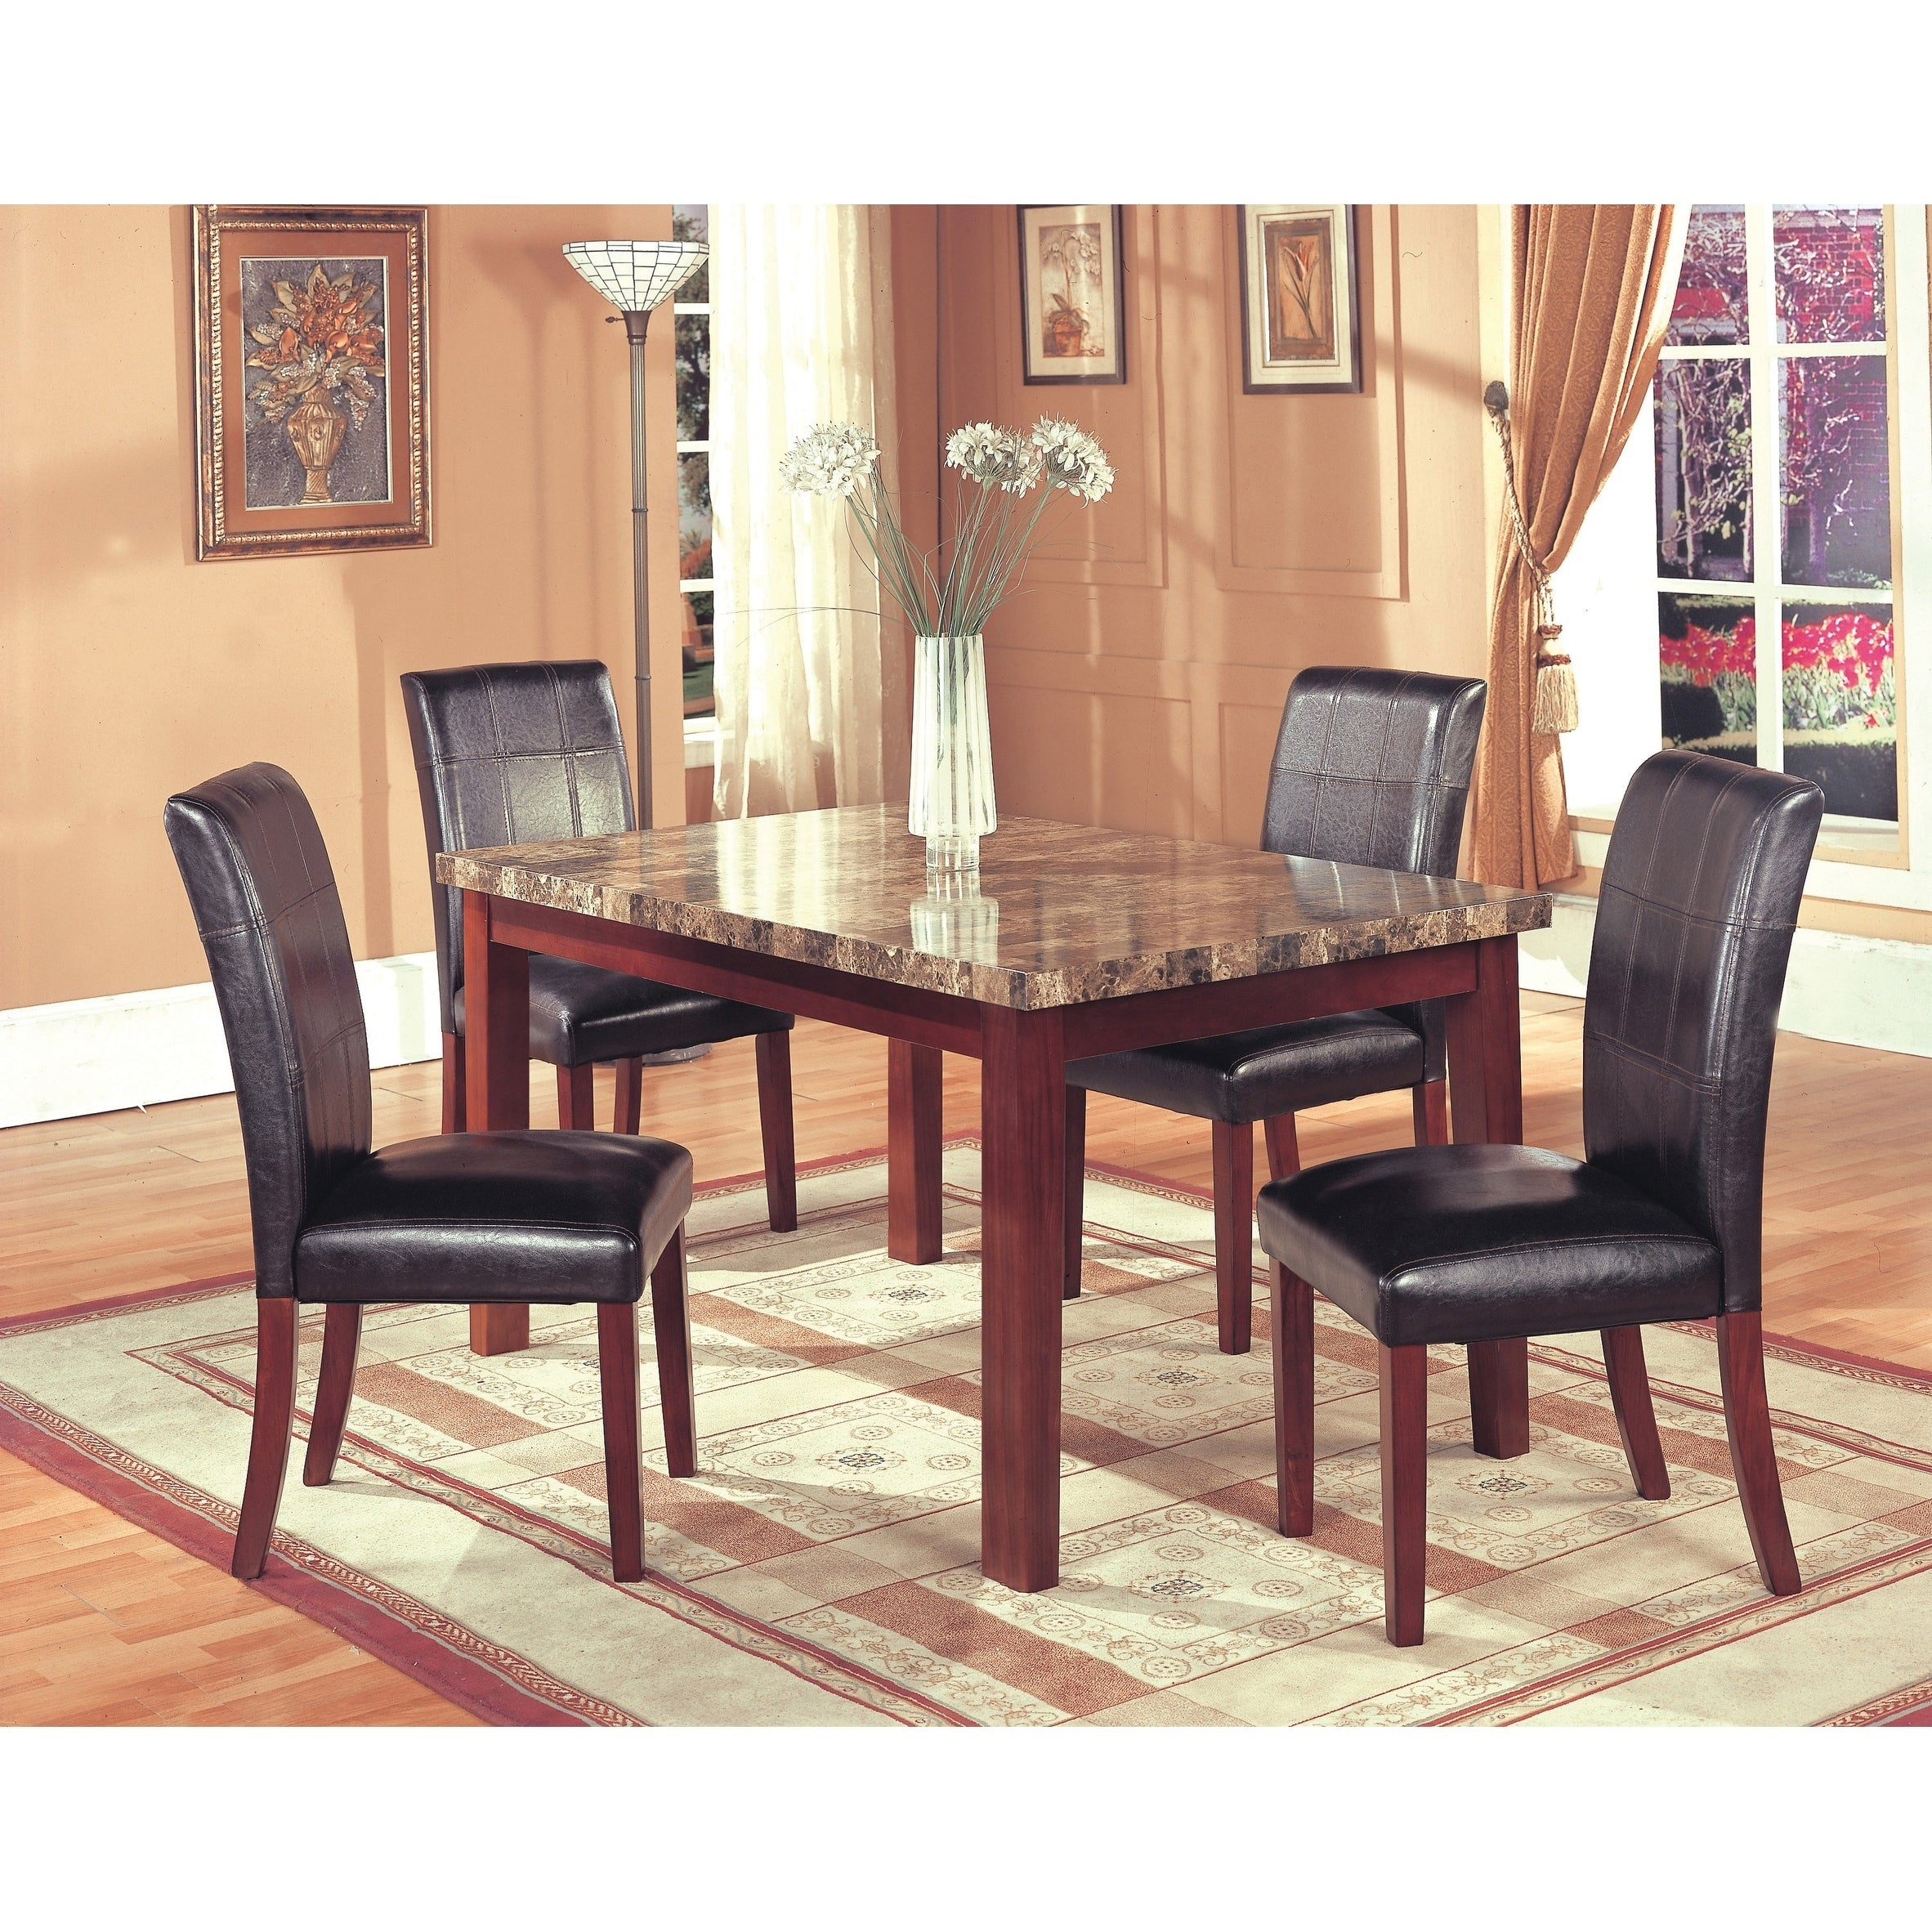 Shop home source siena brown faux marble dining room table with wooden legs table top faux paper veneer free shipping today overstock com 20586179